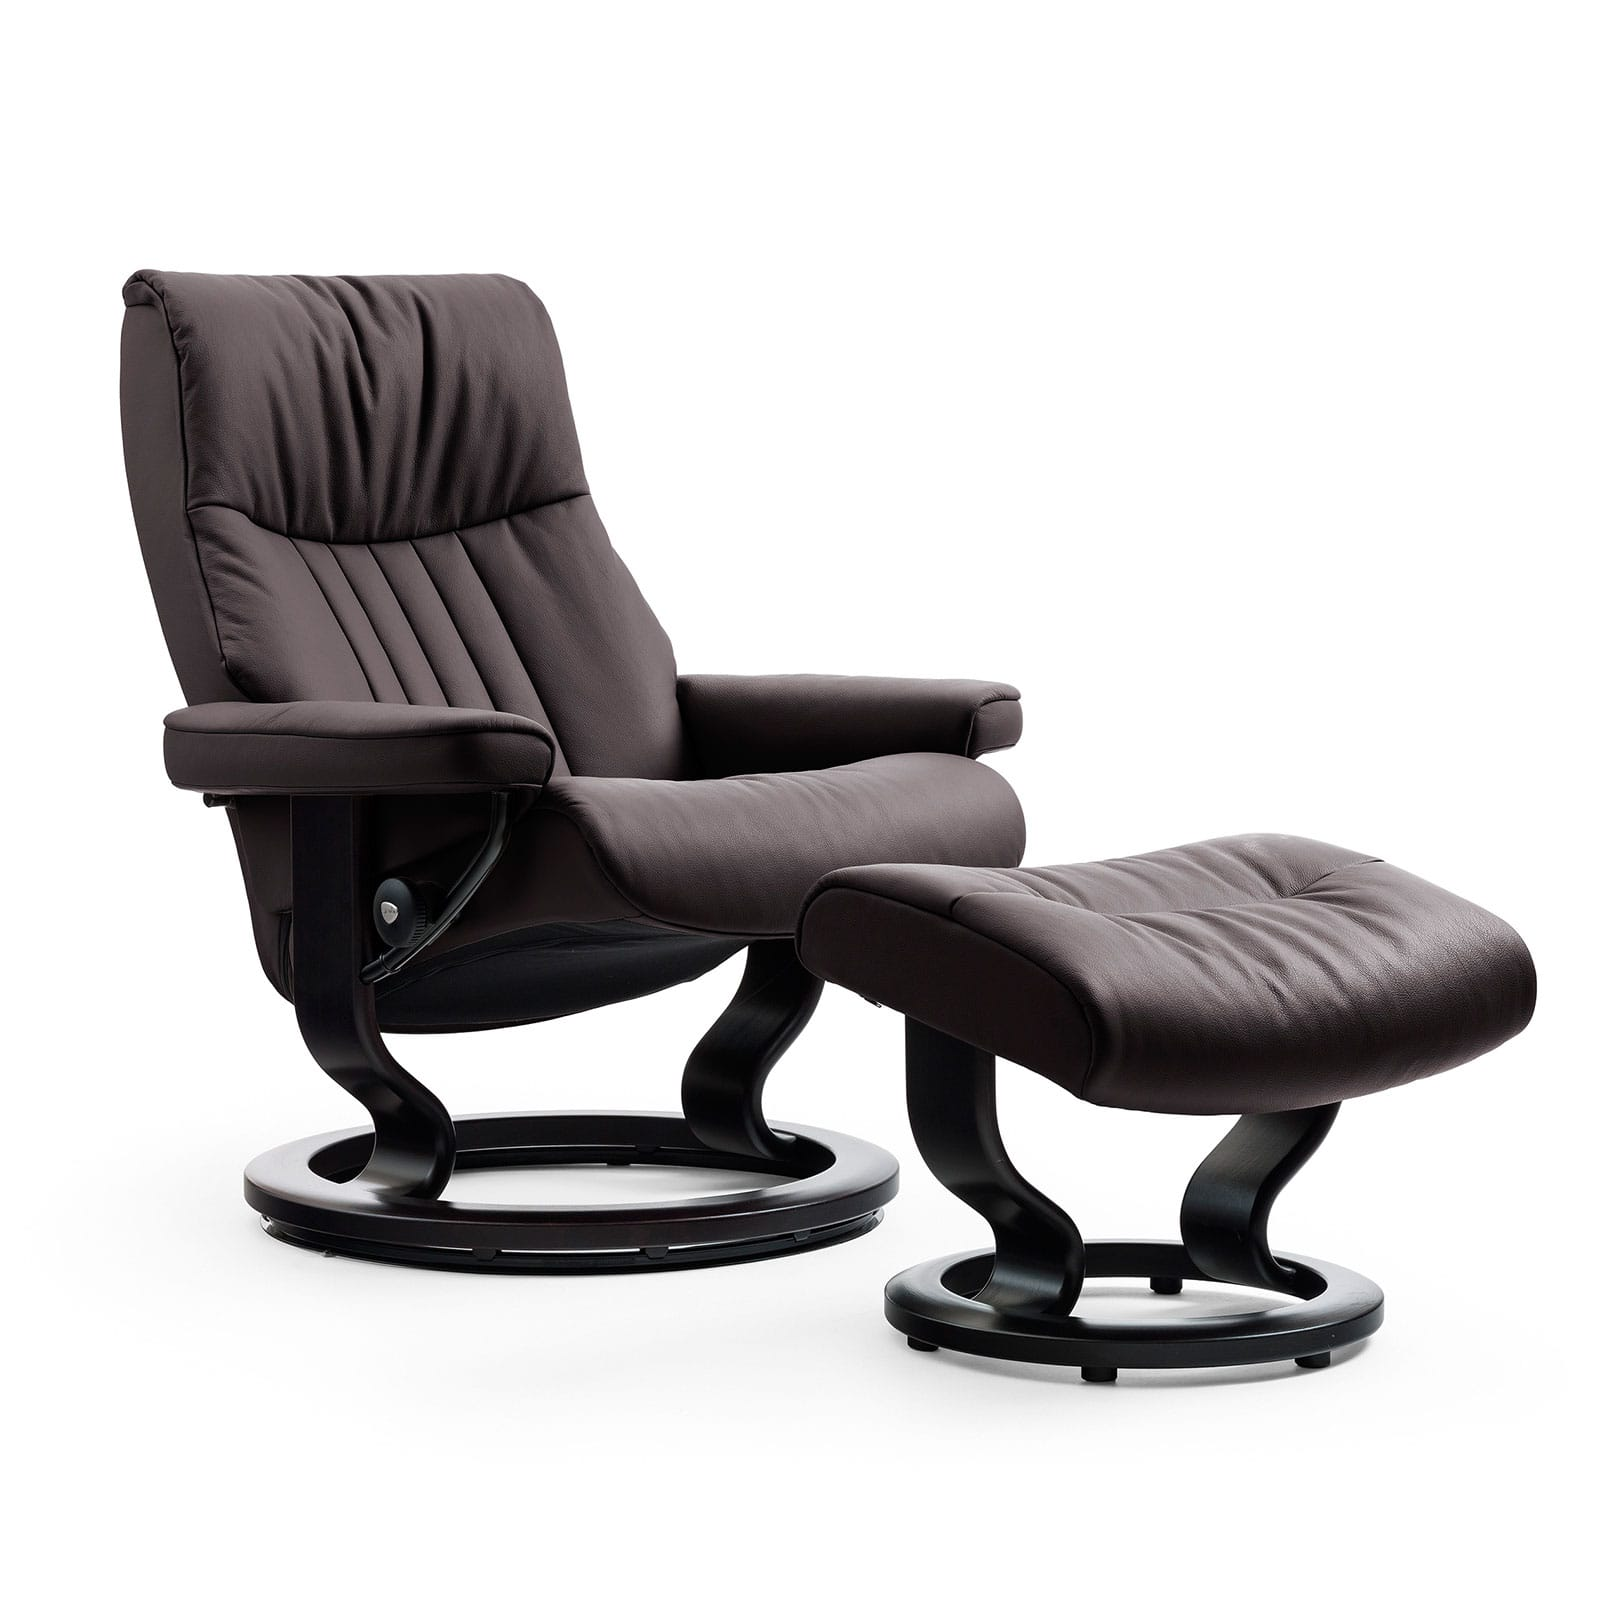 Stressless Jazz Sofa Stressless Sessel Preise Finest Stressless Reno Signature